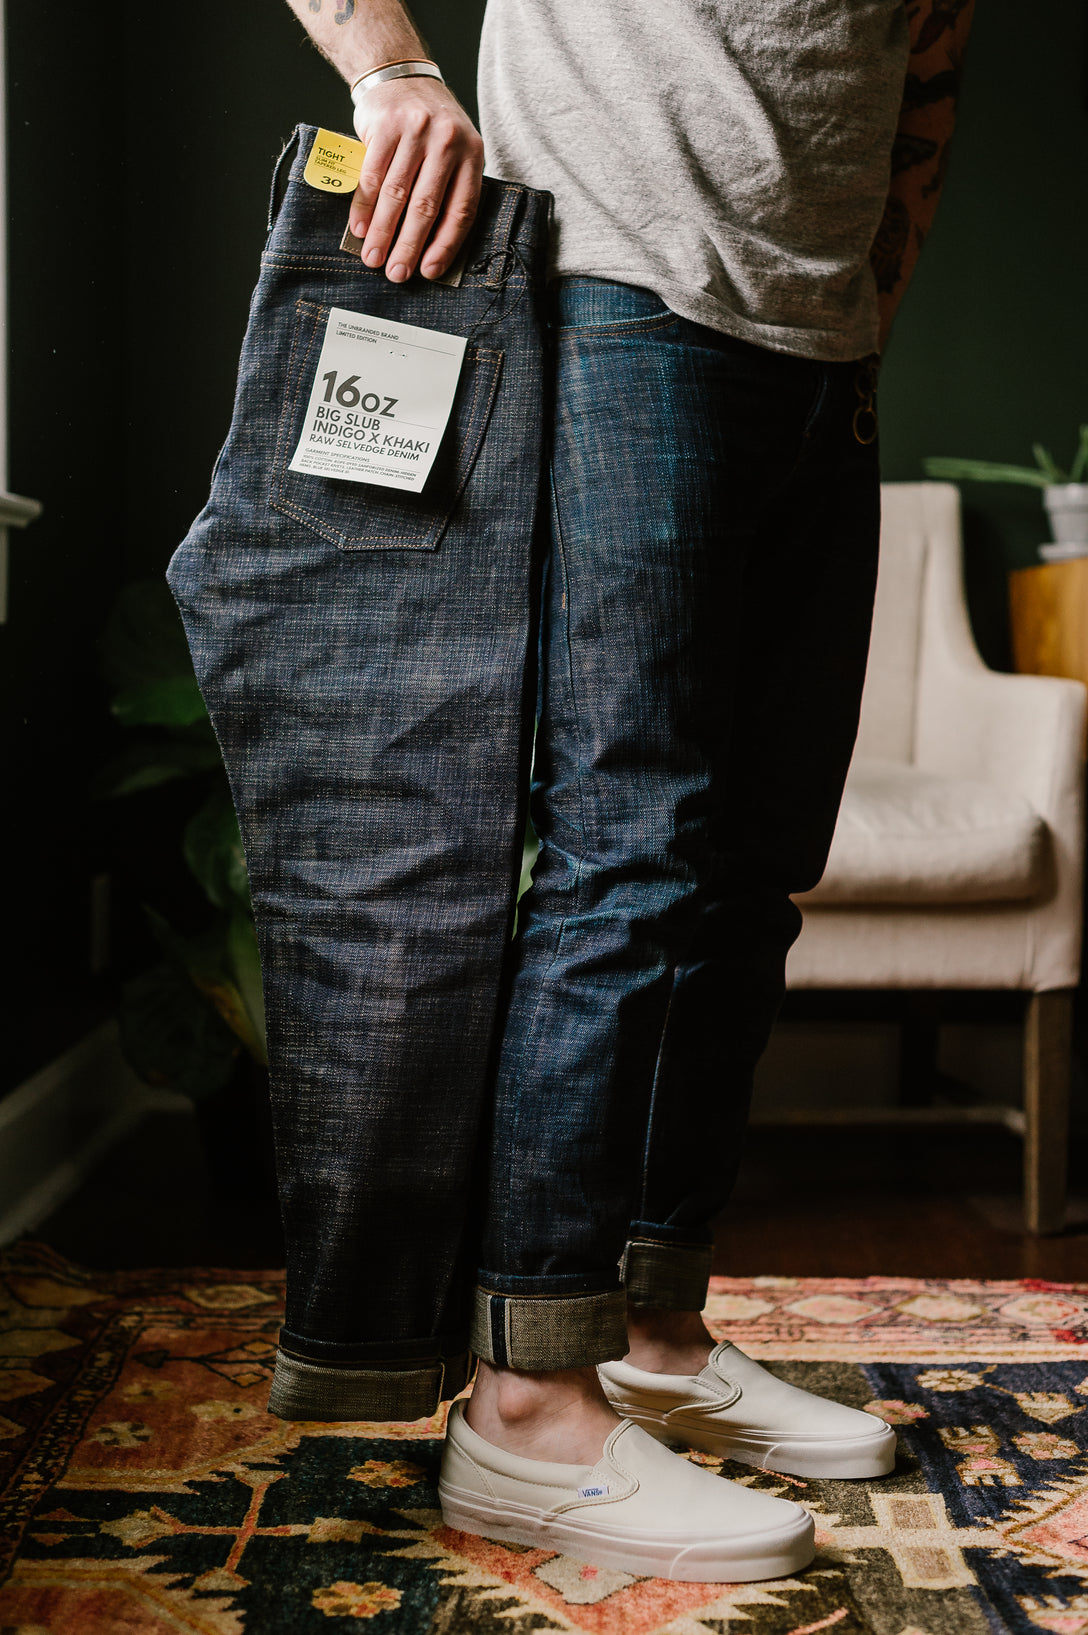 UB473 - 16oz Slubby Selvedge Denim - Indigo/Khaki